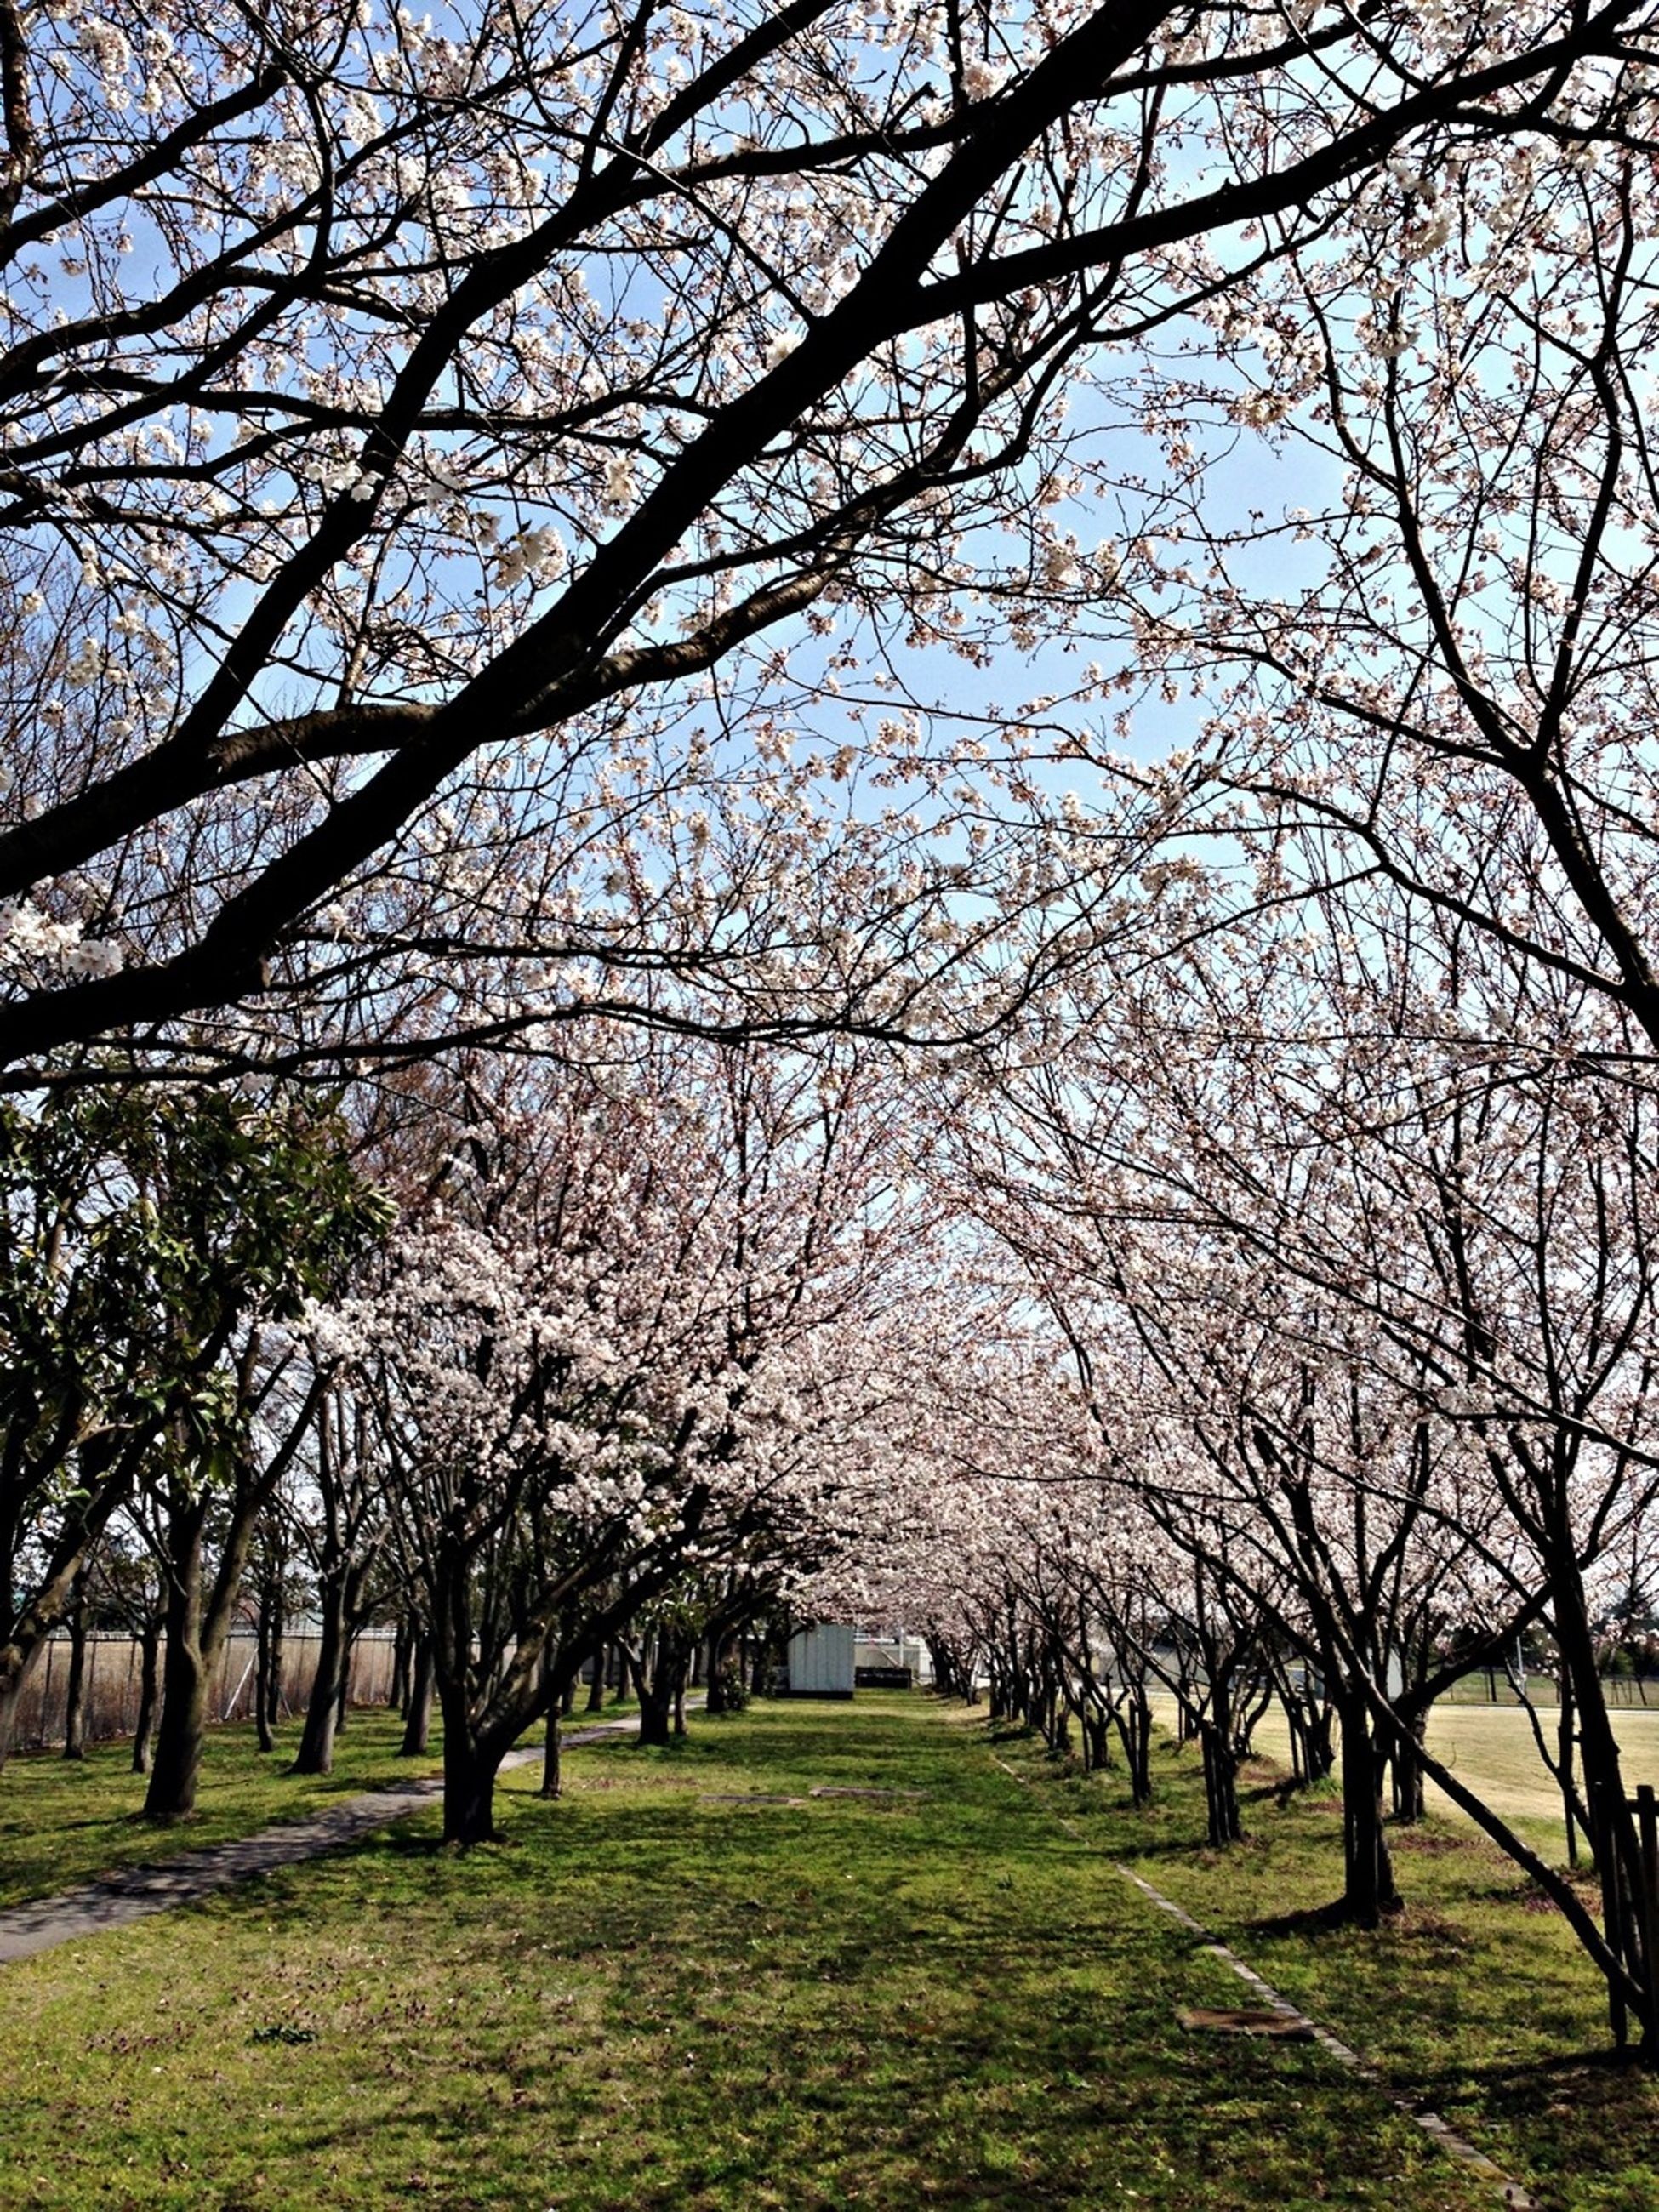 tree, branch, flower, growth, beauty in nature, nature, freshness, blossom, tranquility, park - man made space, cherry blossom, sky, tranquil scene, grass, cherry tree, scenics, springtime, spring, field, day